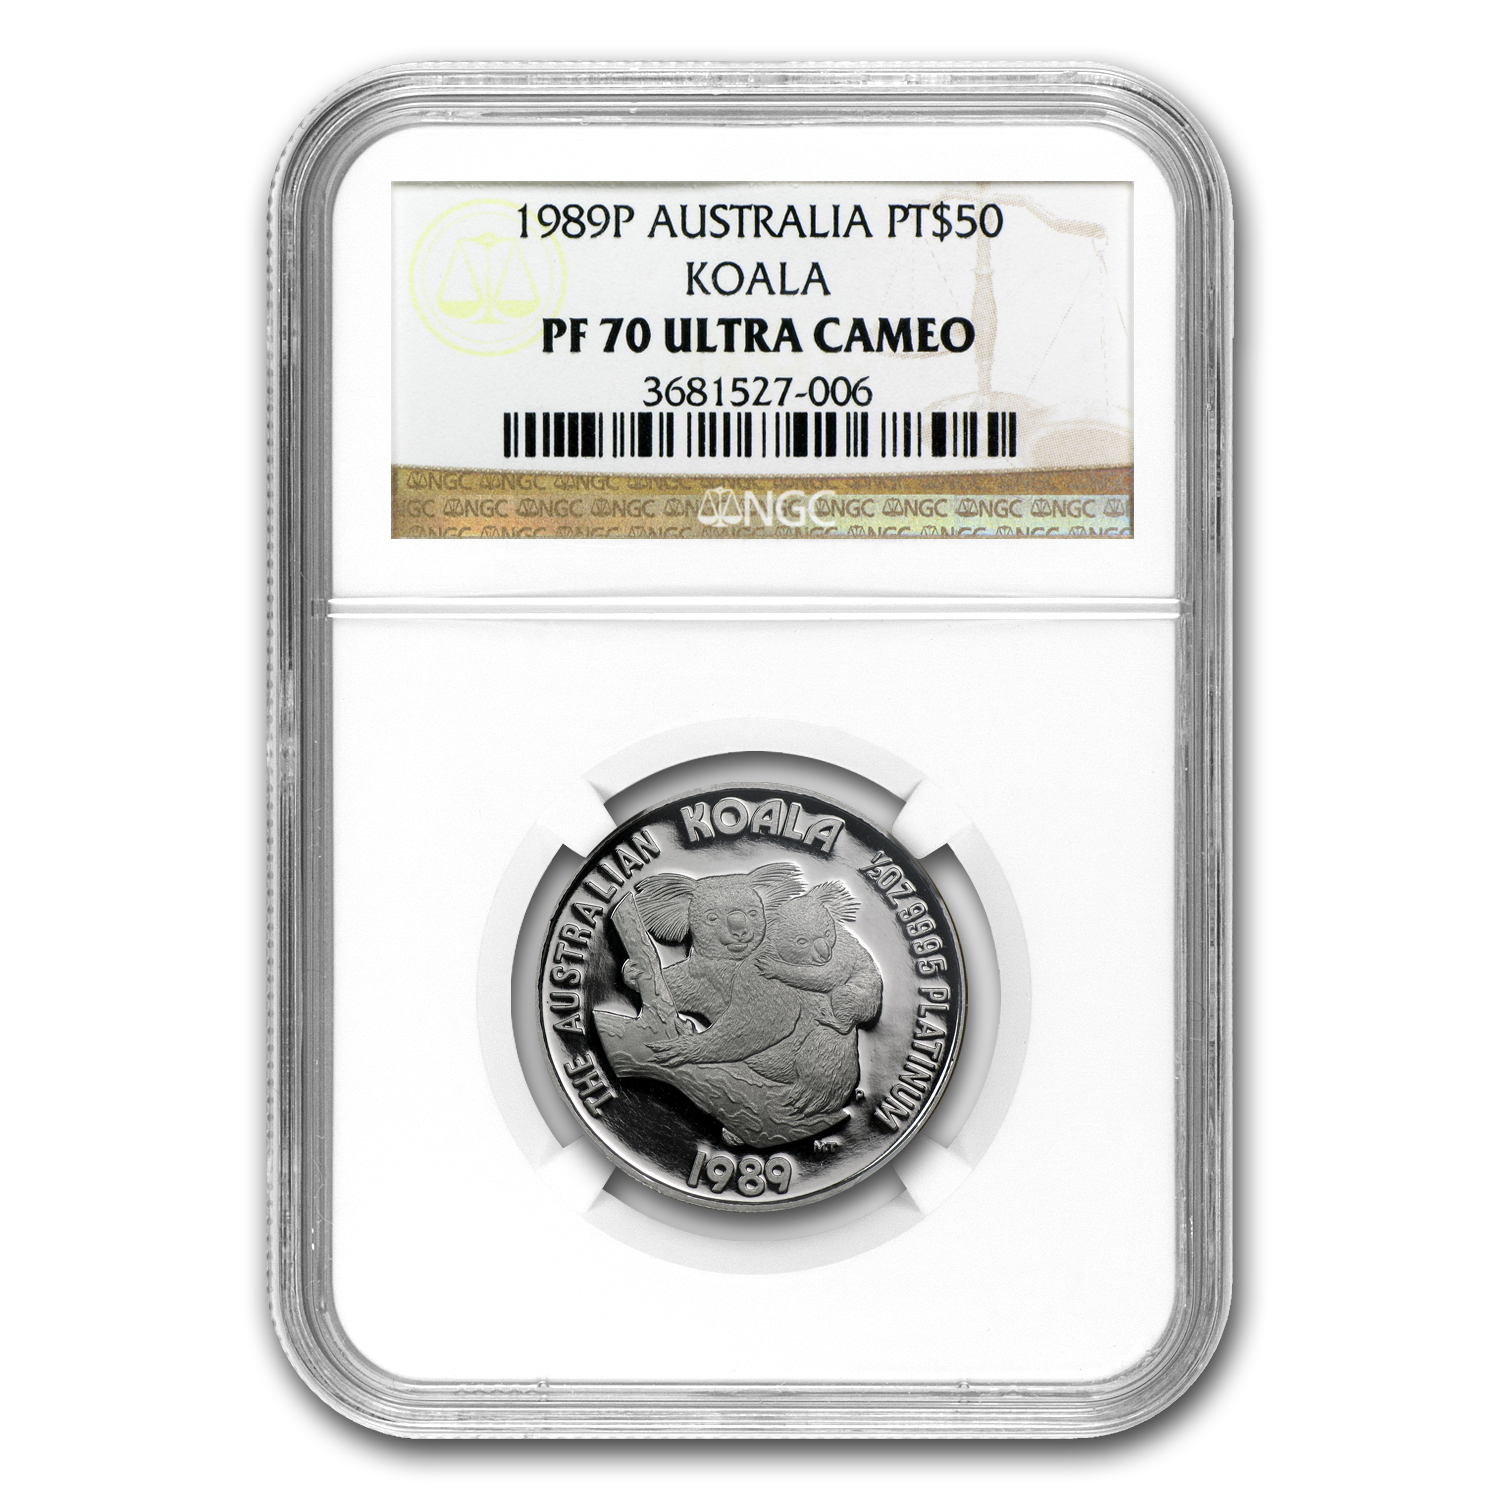 1989 Australia 1/2 oz Proof Platinum Koala PF-70 NGC